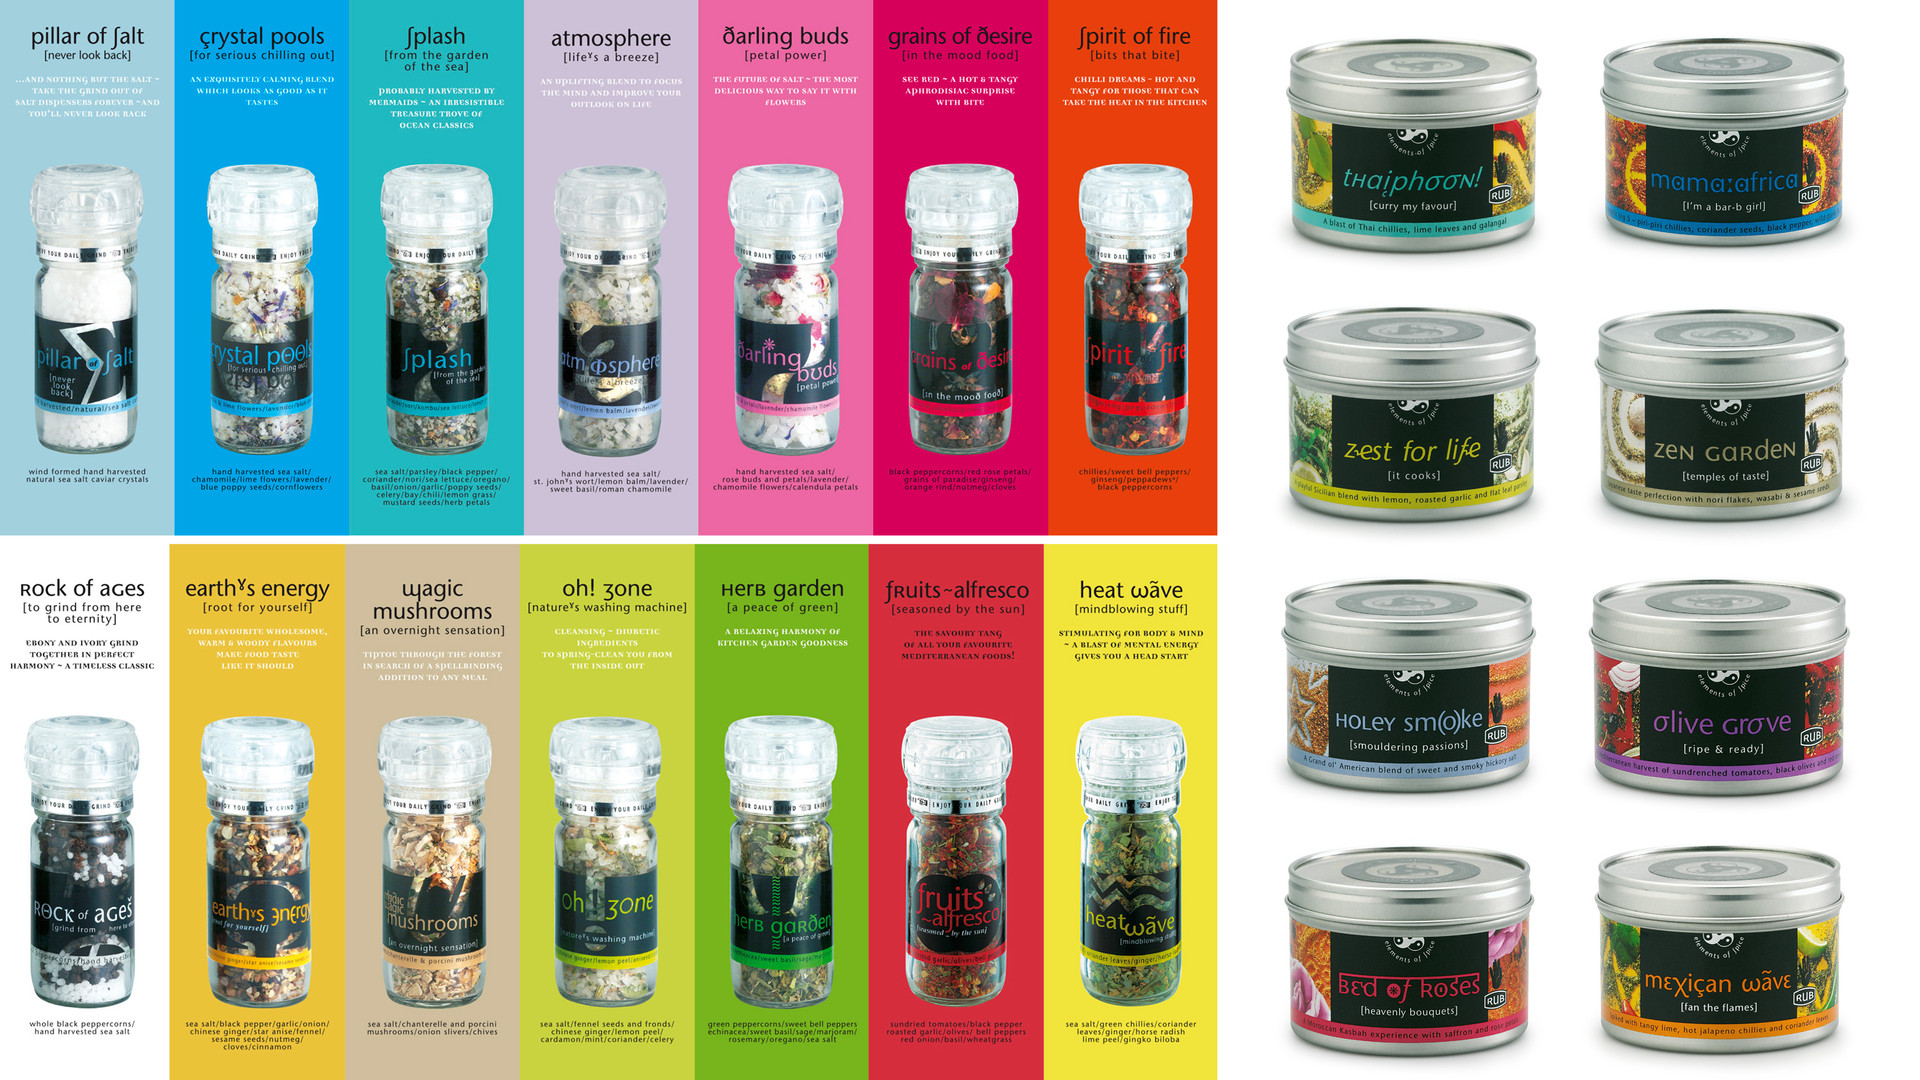 Cape Herb & Spice packaging